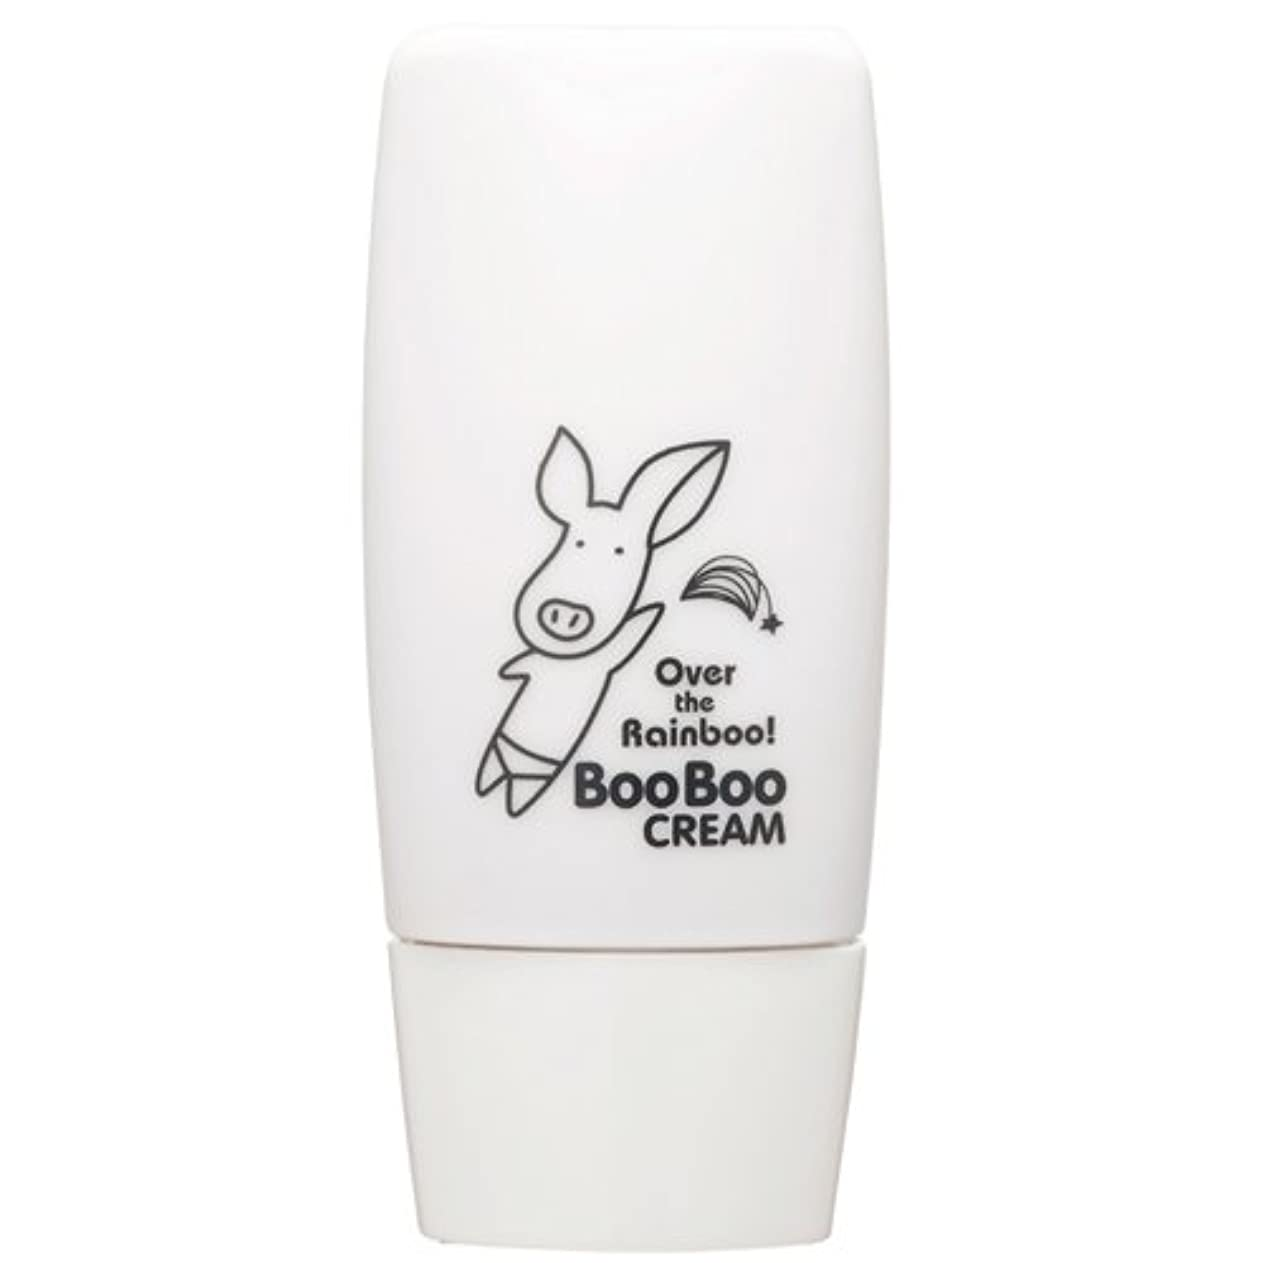 アソシエイト買う才能Over the Rainboo! Boo Boo CREAM